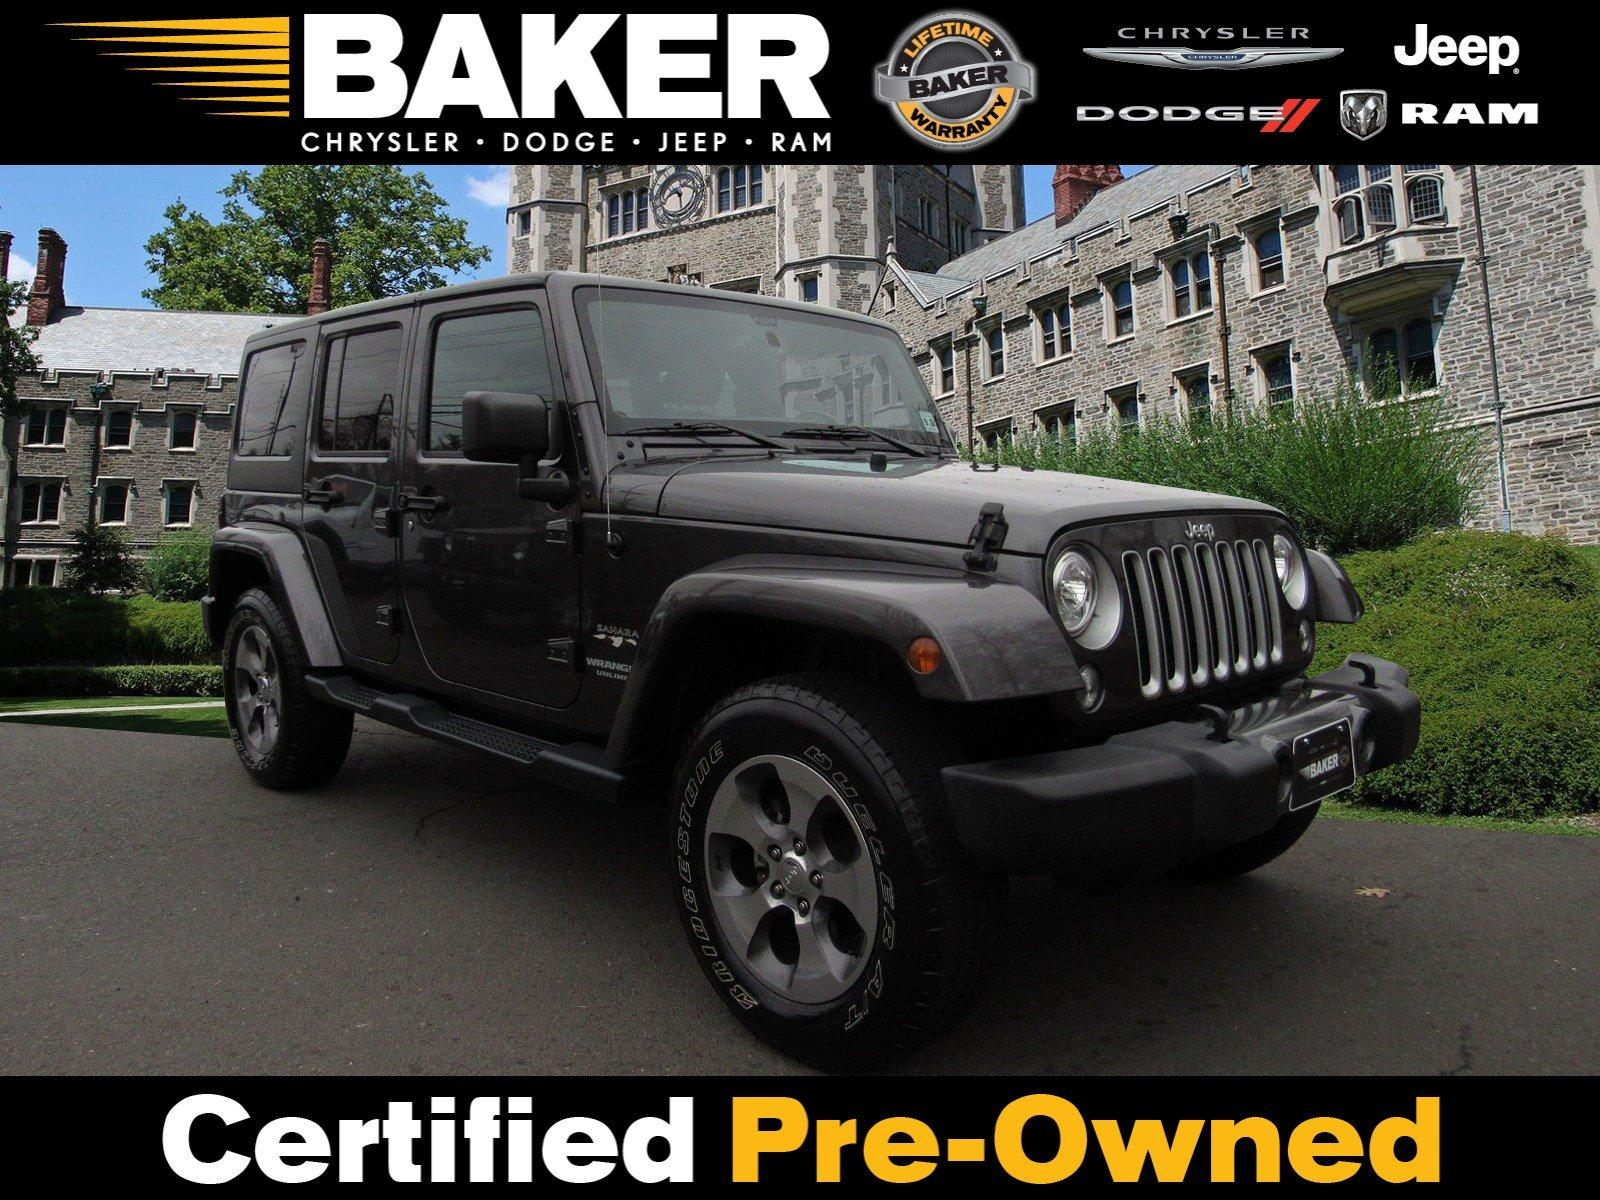 Used 2017 Jeep Wrangler Unlimited Sahara for sale Sold at Victory Lotus in Princeton NJ 08540 1